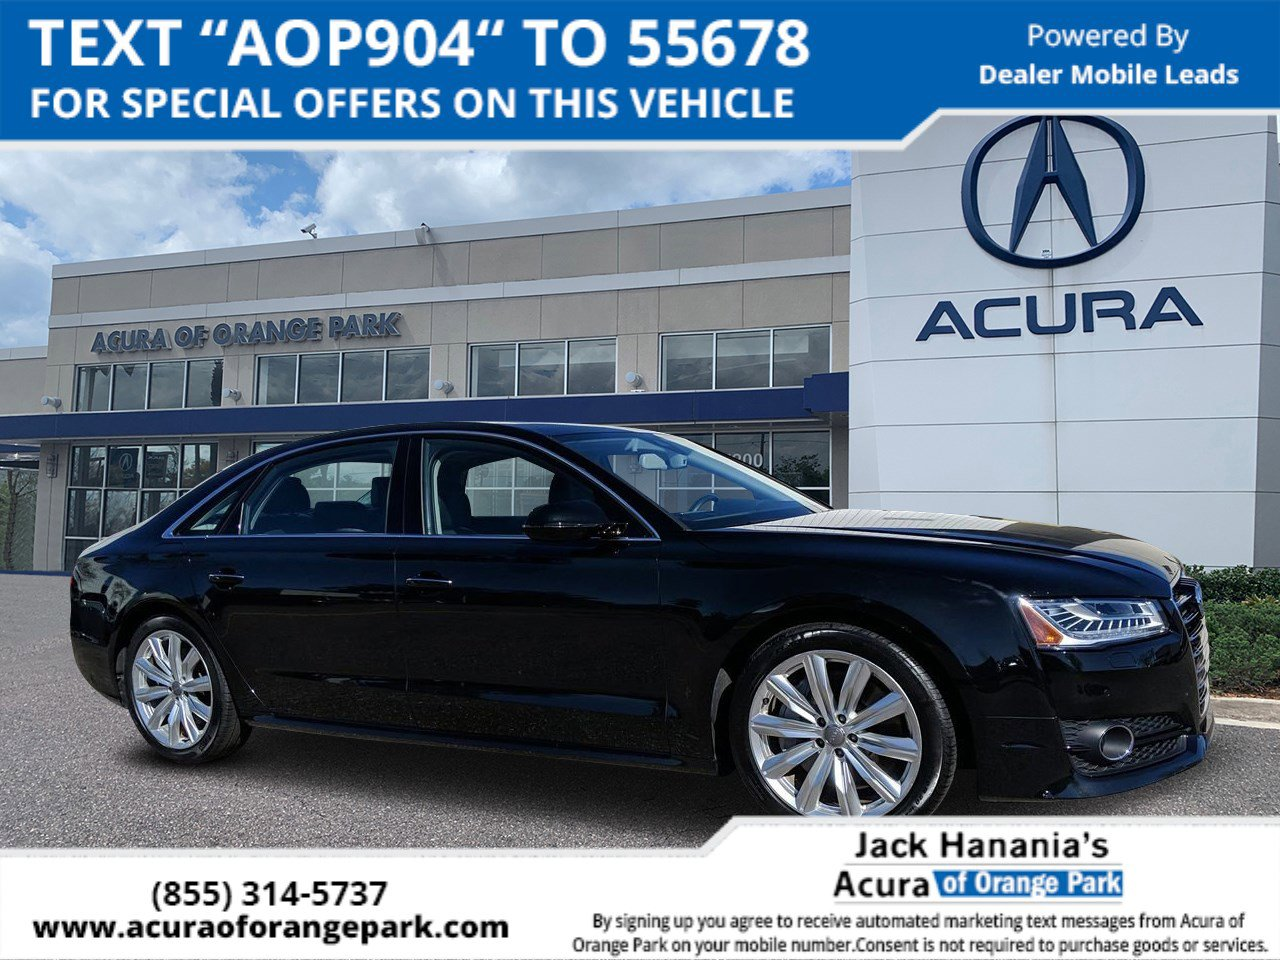 2017 Audi A8 L 3.0T w/ EXECUTIVE PACKAGE image